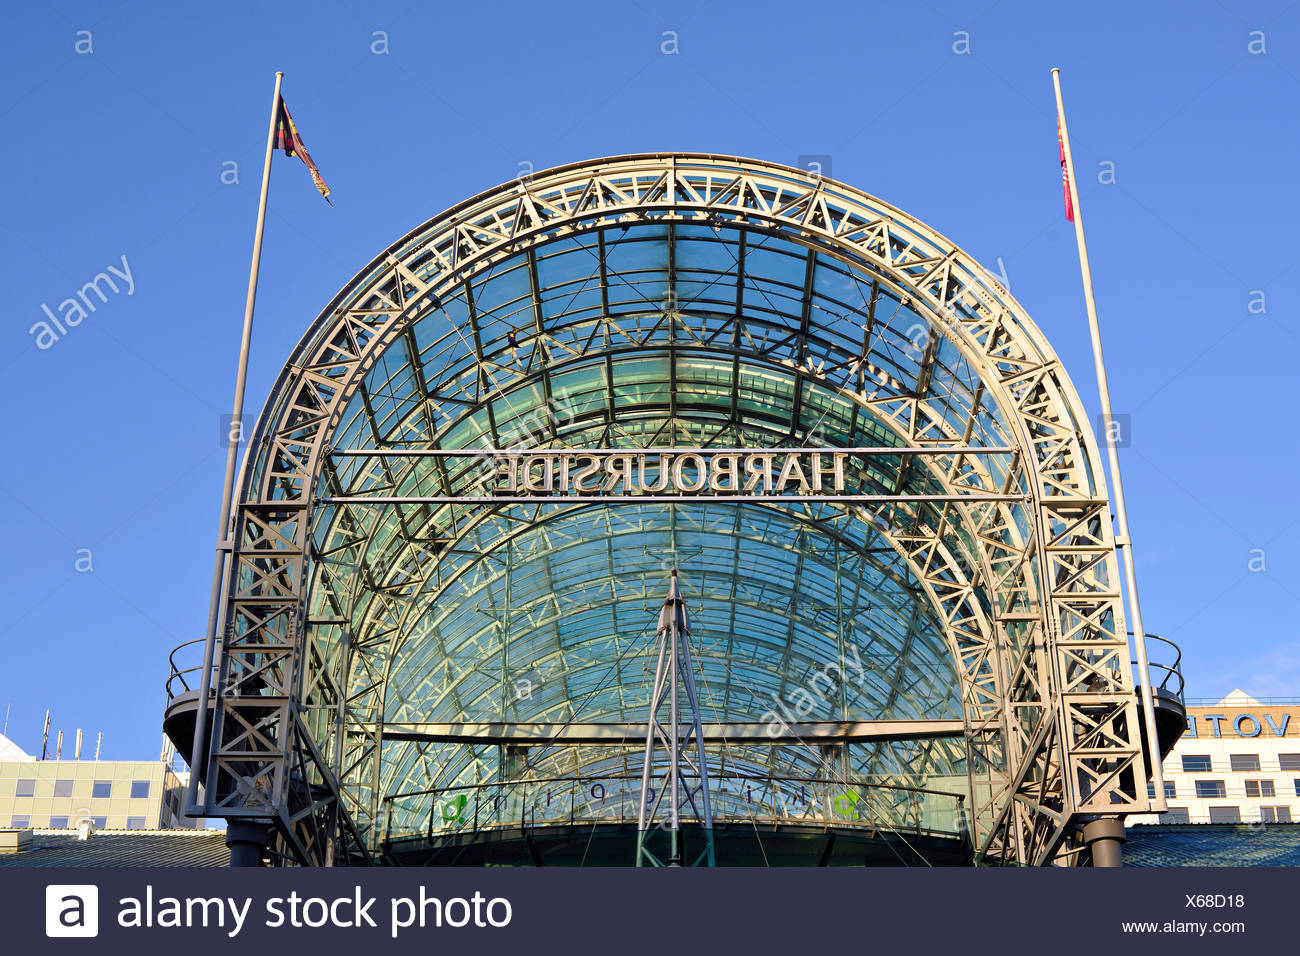 Harbourside Shopping Centre, Darling Harbour, Sydney, New South Wales, Australia - Stock Image